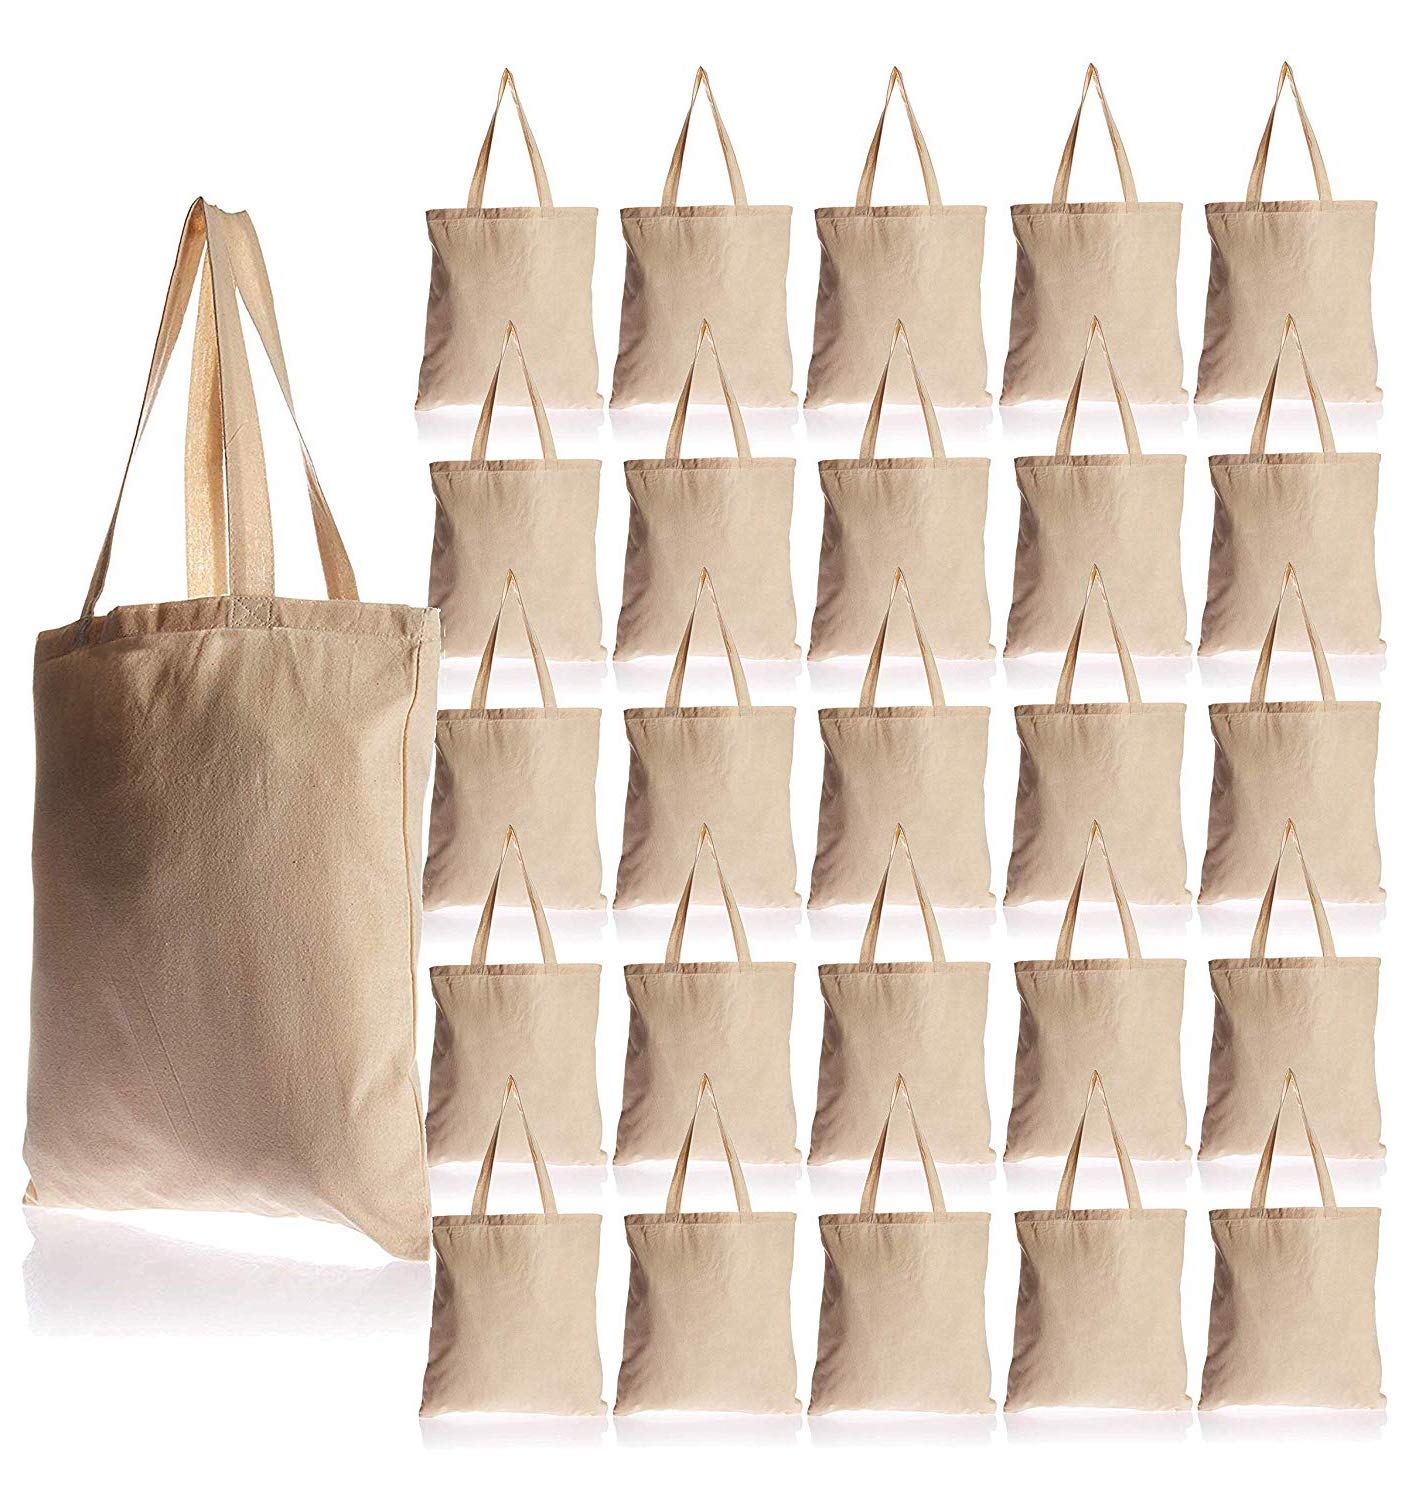 25 Pack Bulk Cotton Canvas Tote Bags Reusable Grocery Shopping Blank Tote Bags in Bulk Blank Art Craft Supply Book Print Bulk Lot School Church Party Blank goods Bags Wholesale Tote Bags (Natural) by BagzDepot